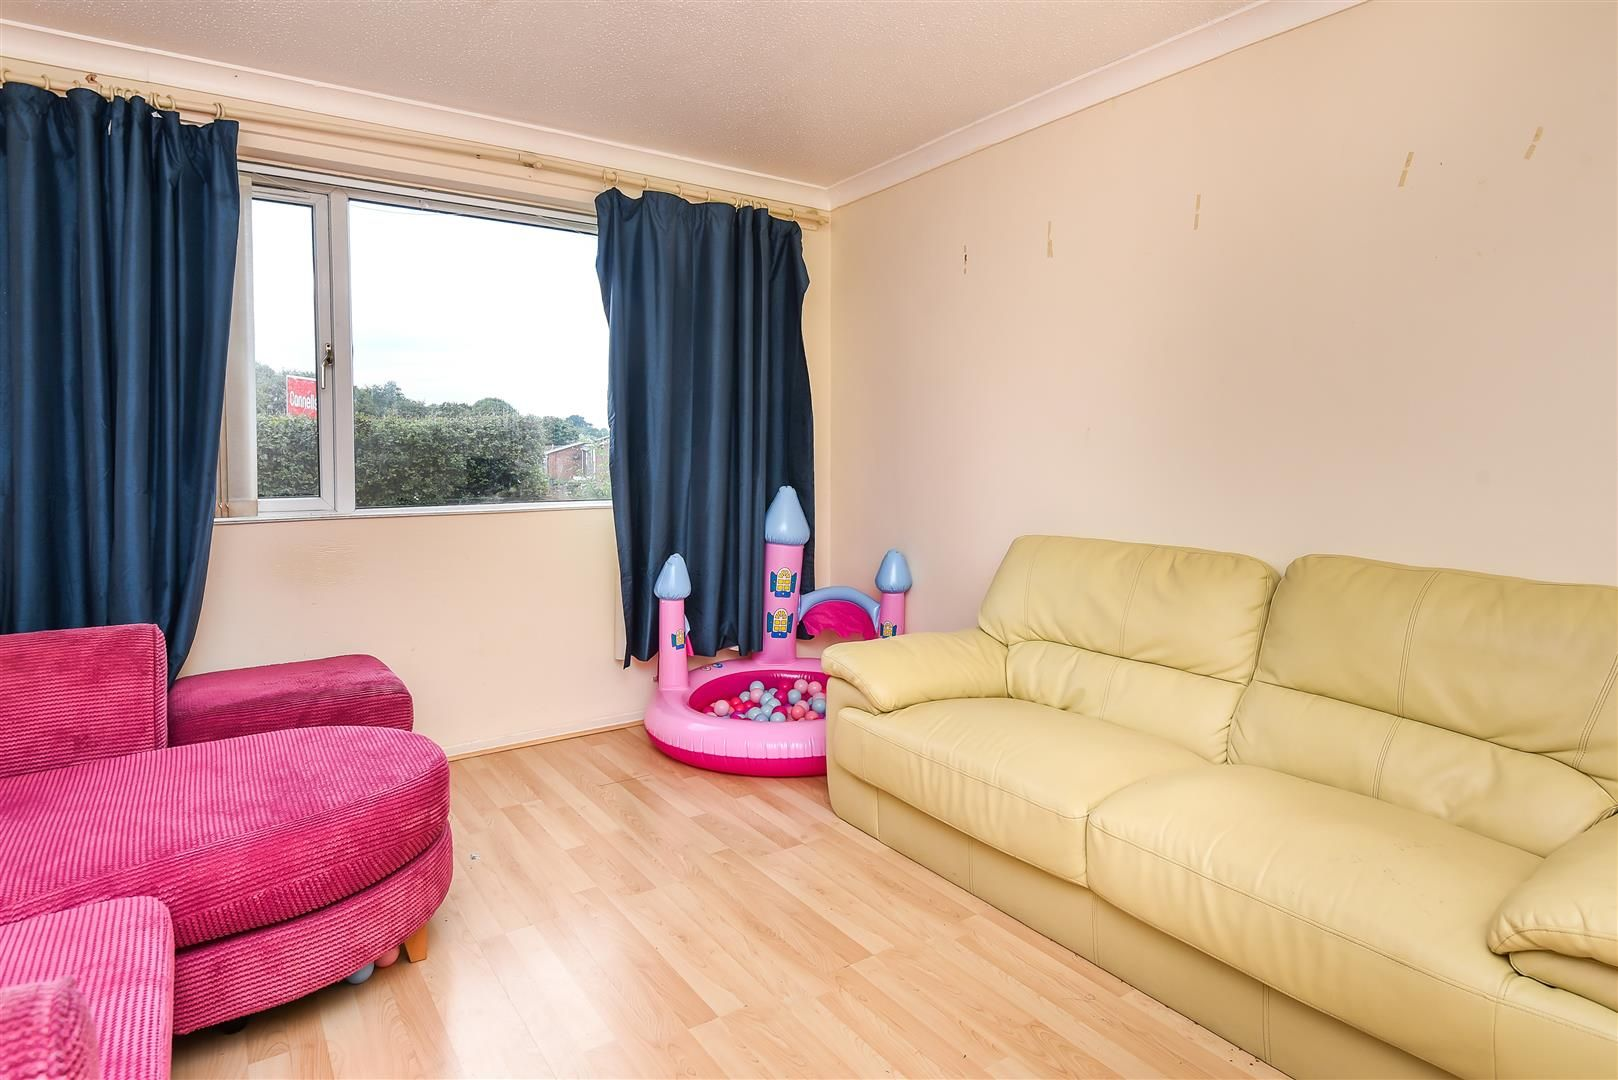 3 bed terraced for sale in Hereford 4